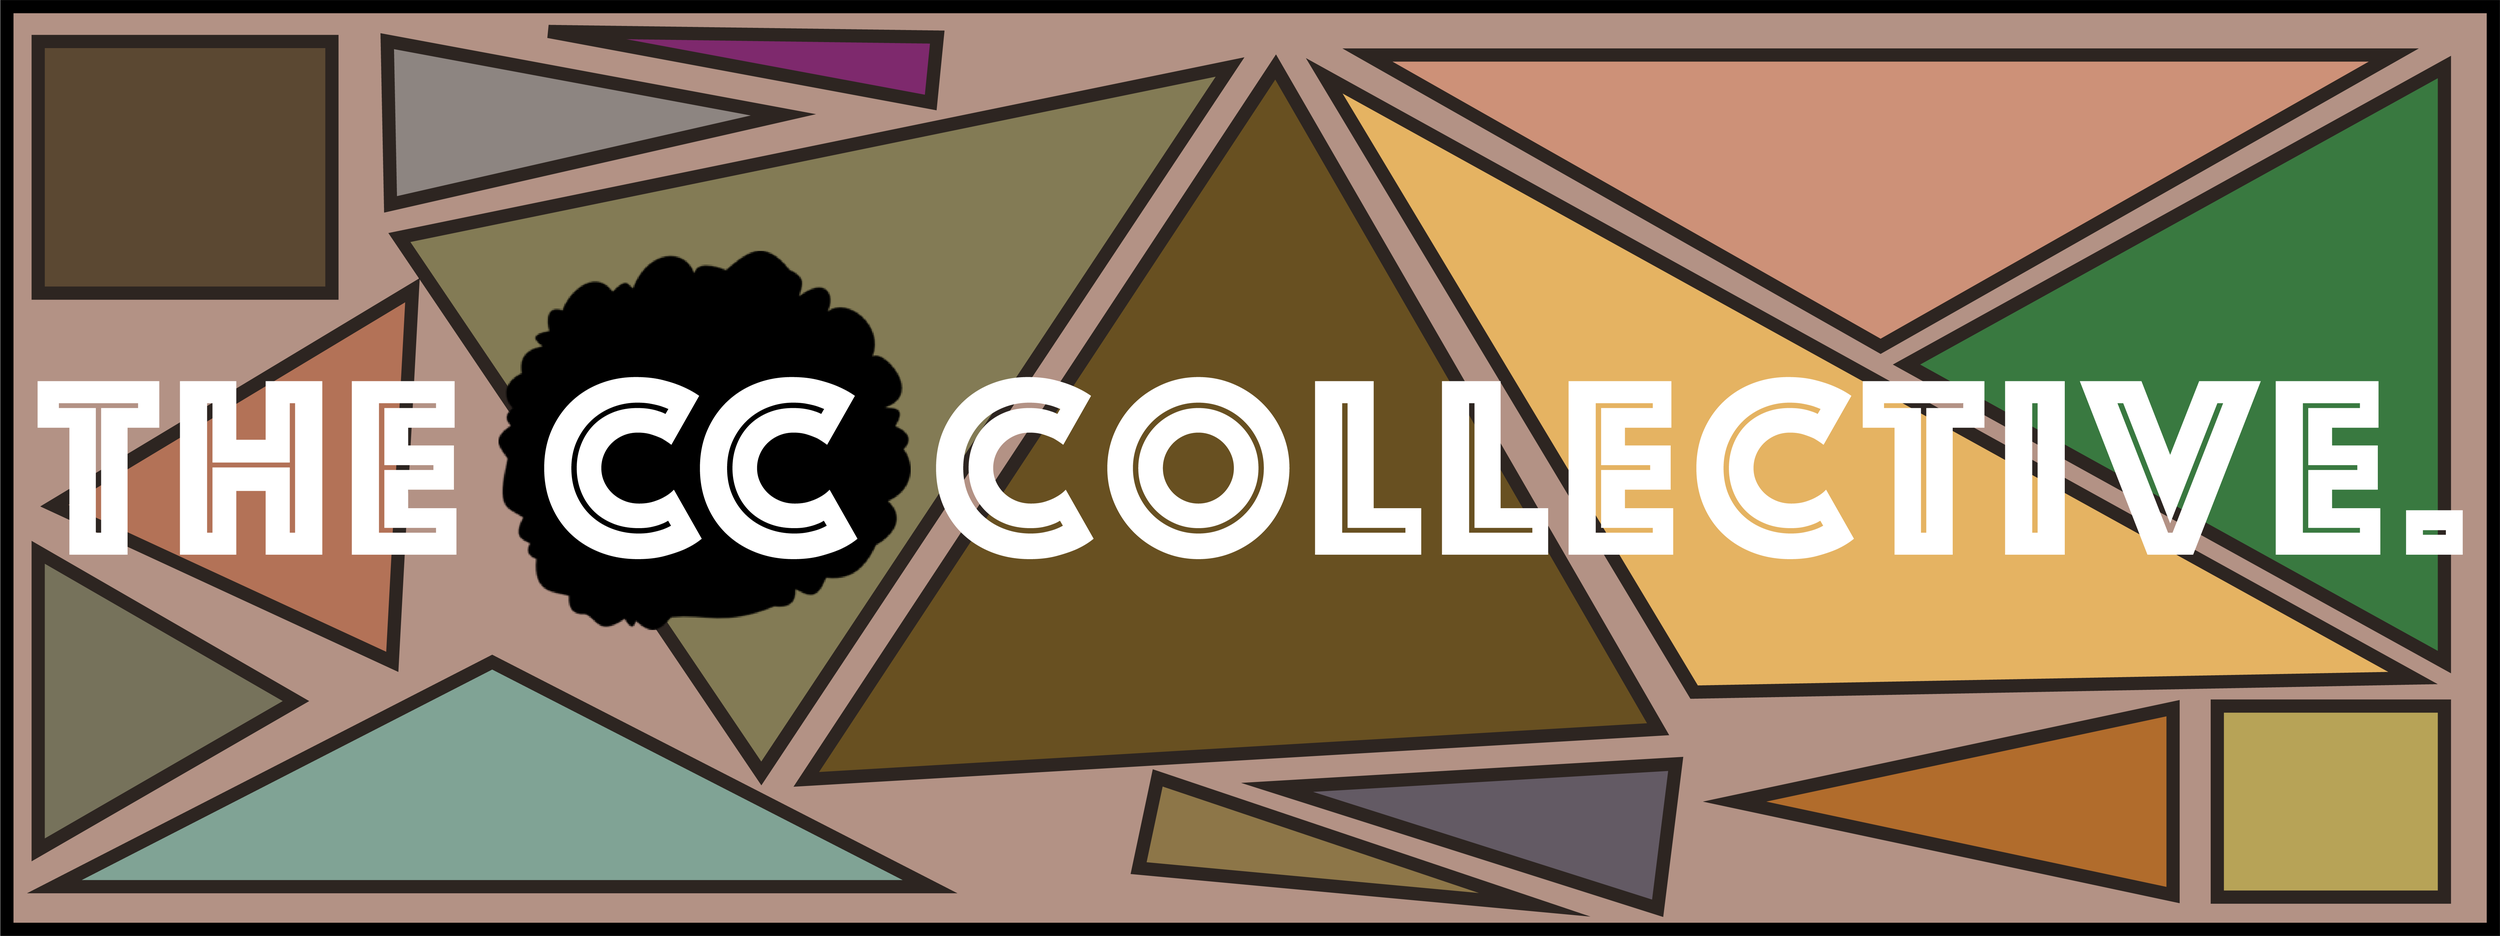 The CC Collective, founded in 2017 is an art organization comprised of artists and creatives of color. Our goal is to create cultural change through public art & pop up installations. Funded & Founded by Cultural Crawl.